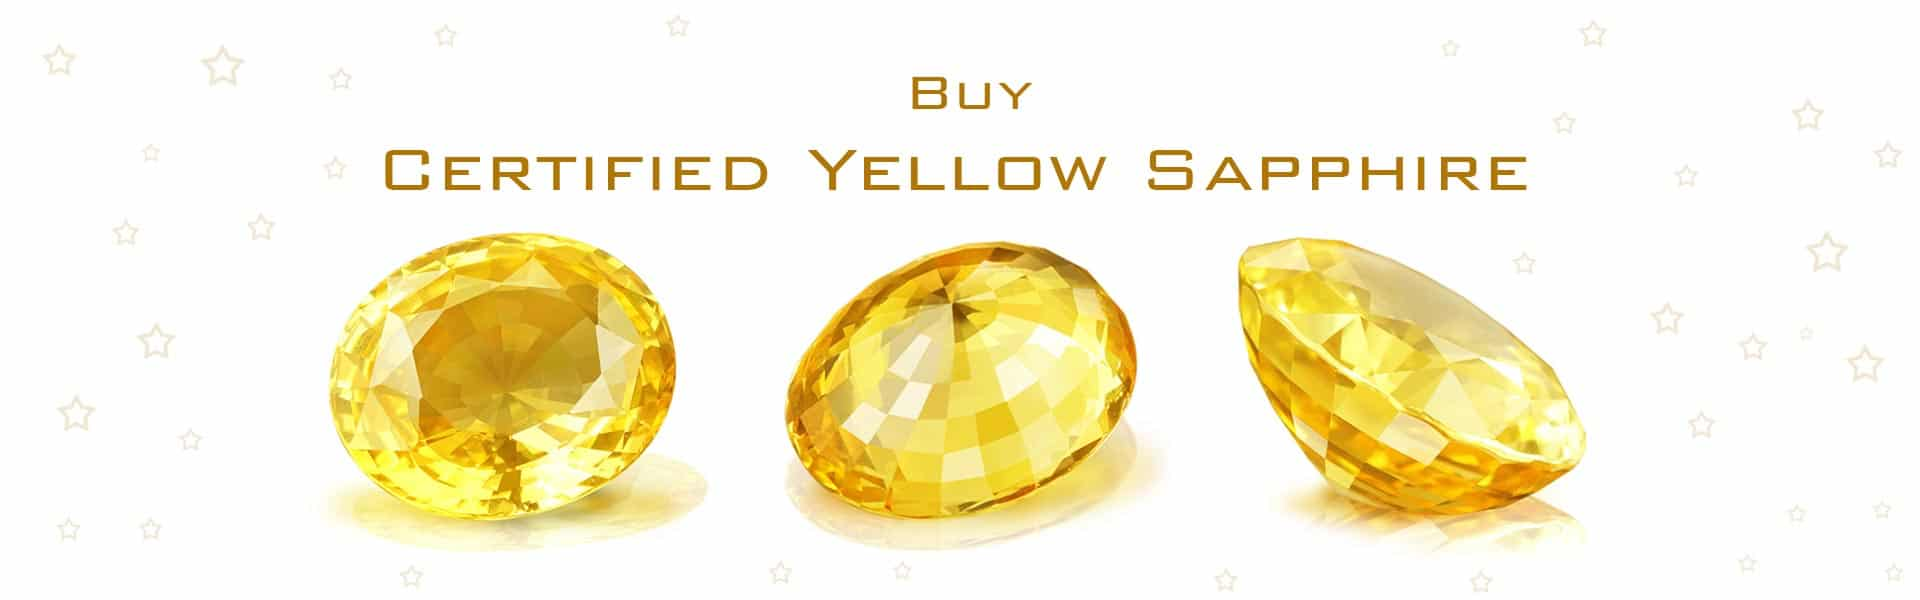 Gemstone what finger vedic astrology compatibility